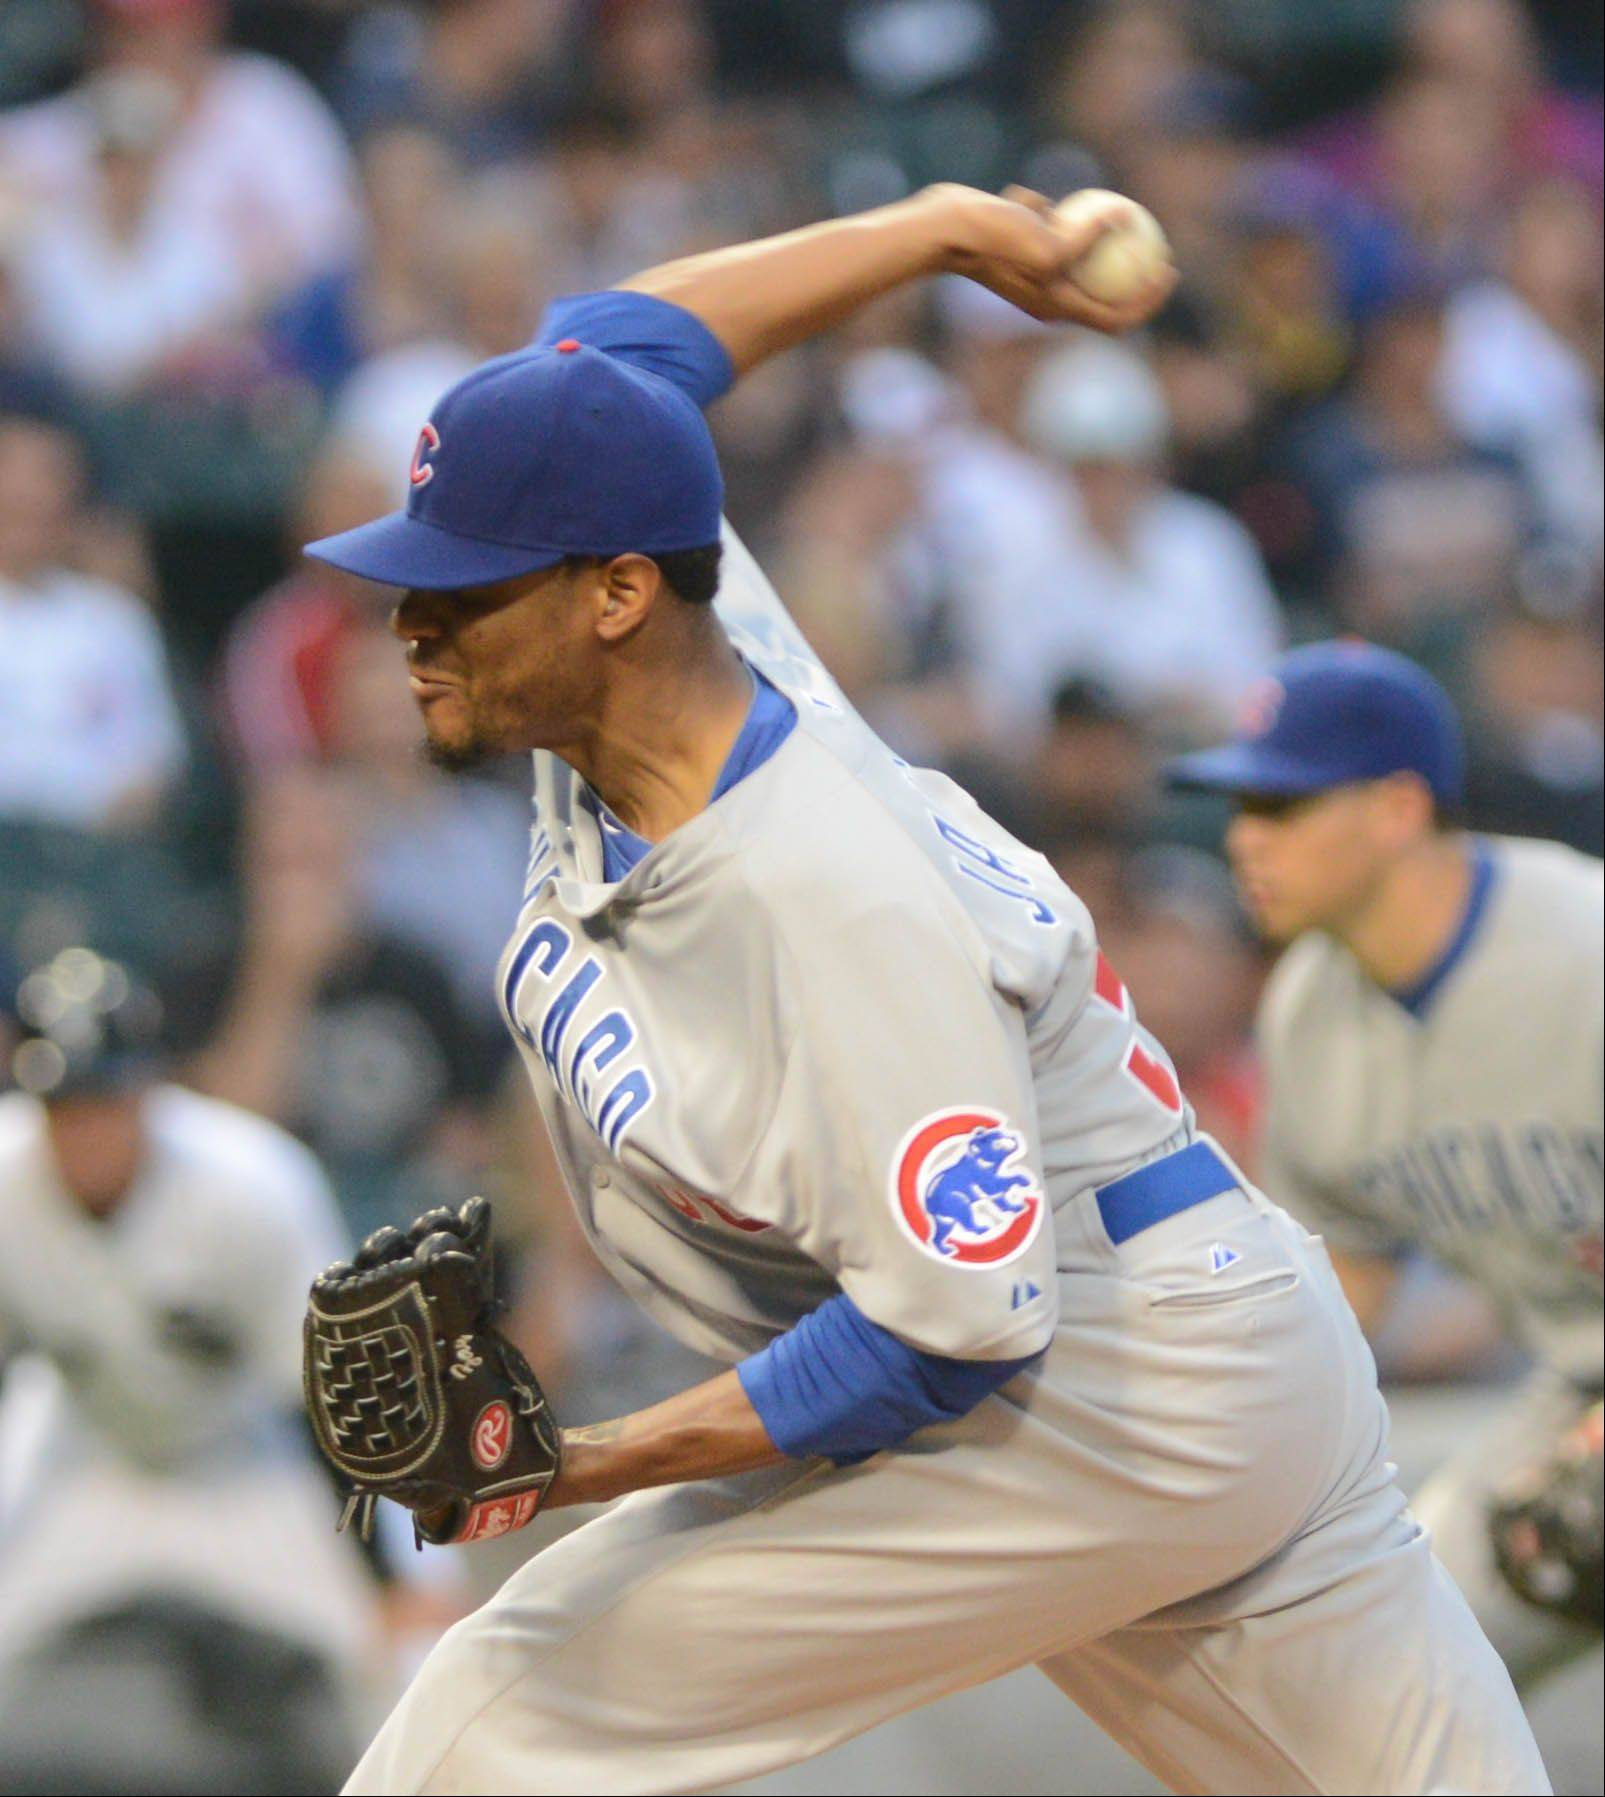 Cubs starter Edwin Jackson had things going his way Tuesday night at U.S. Cellular Field. And then the skies opened.